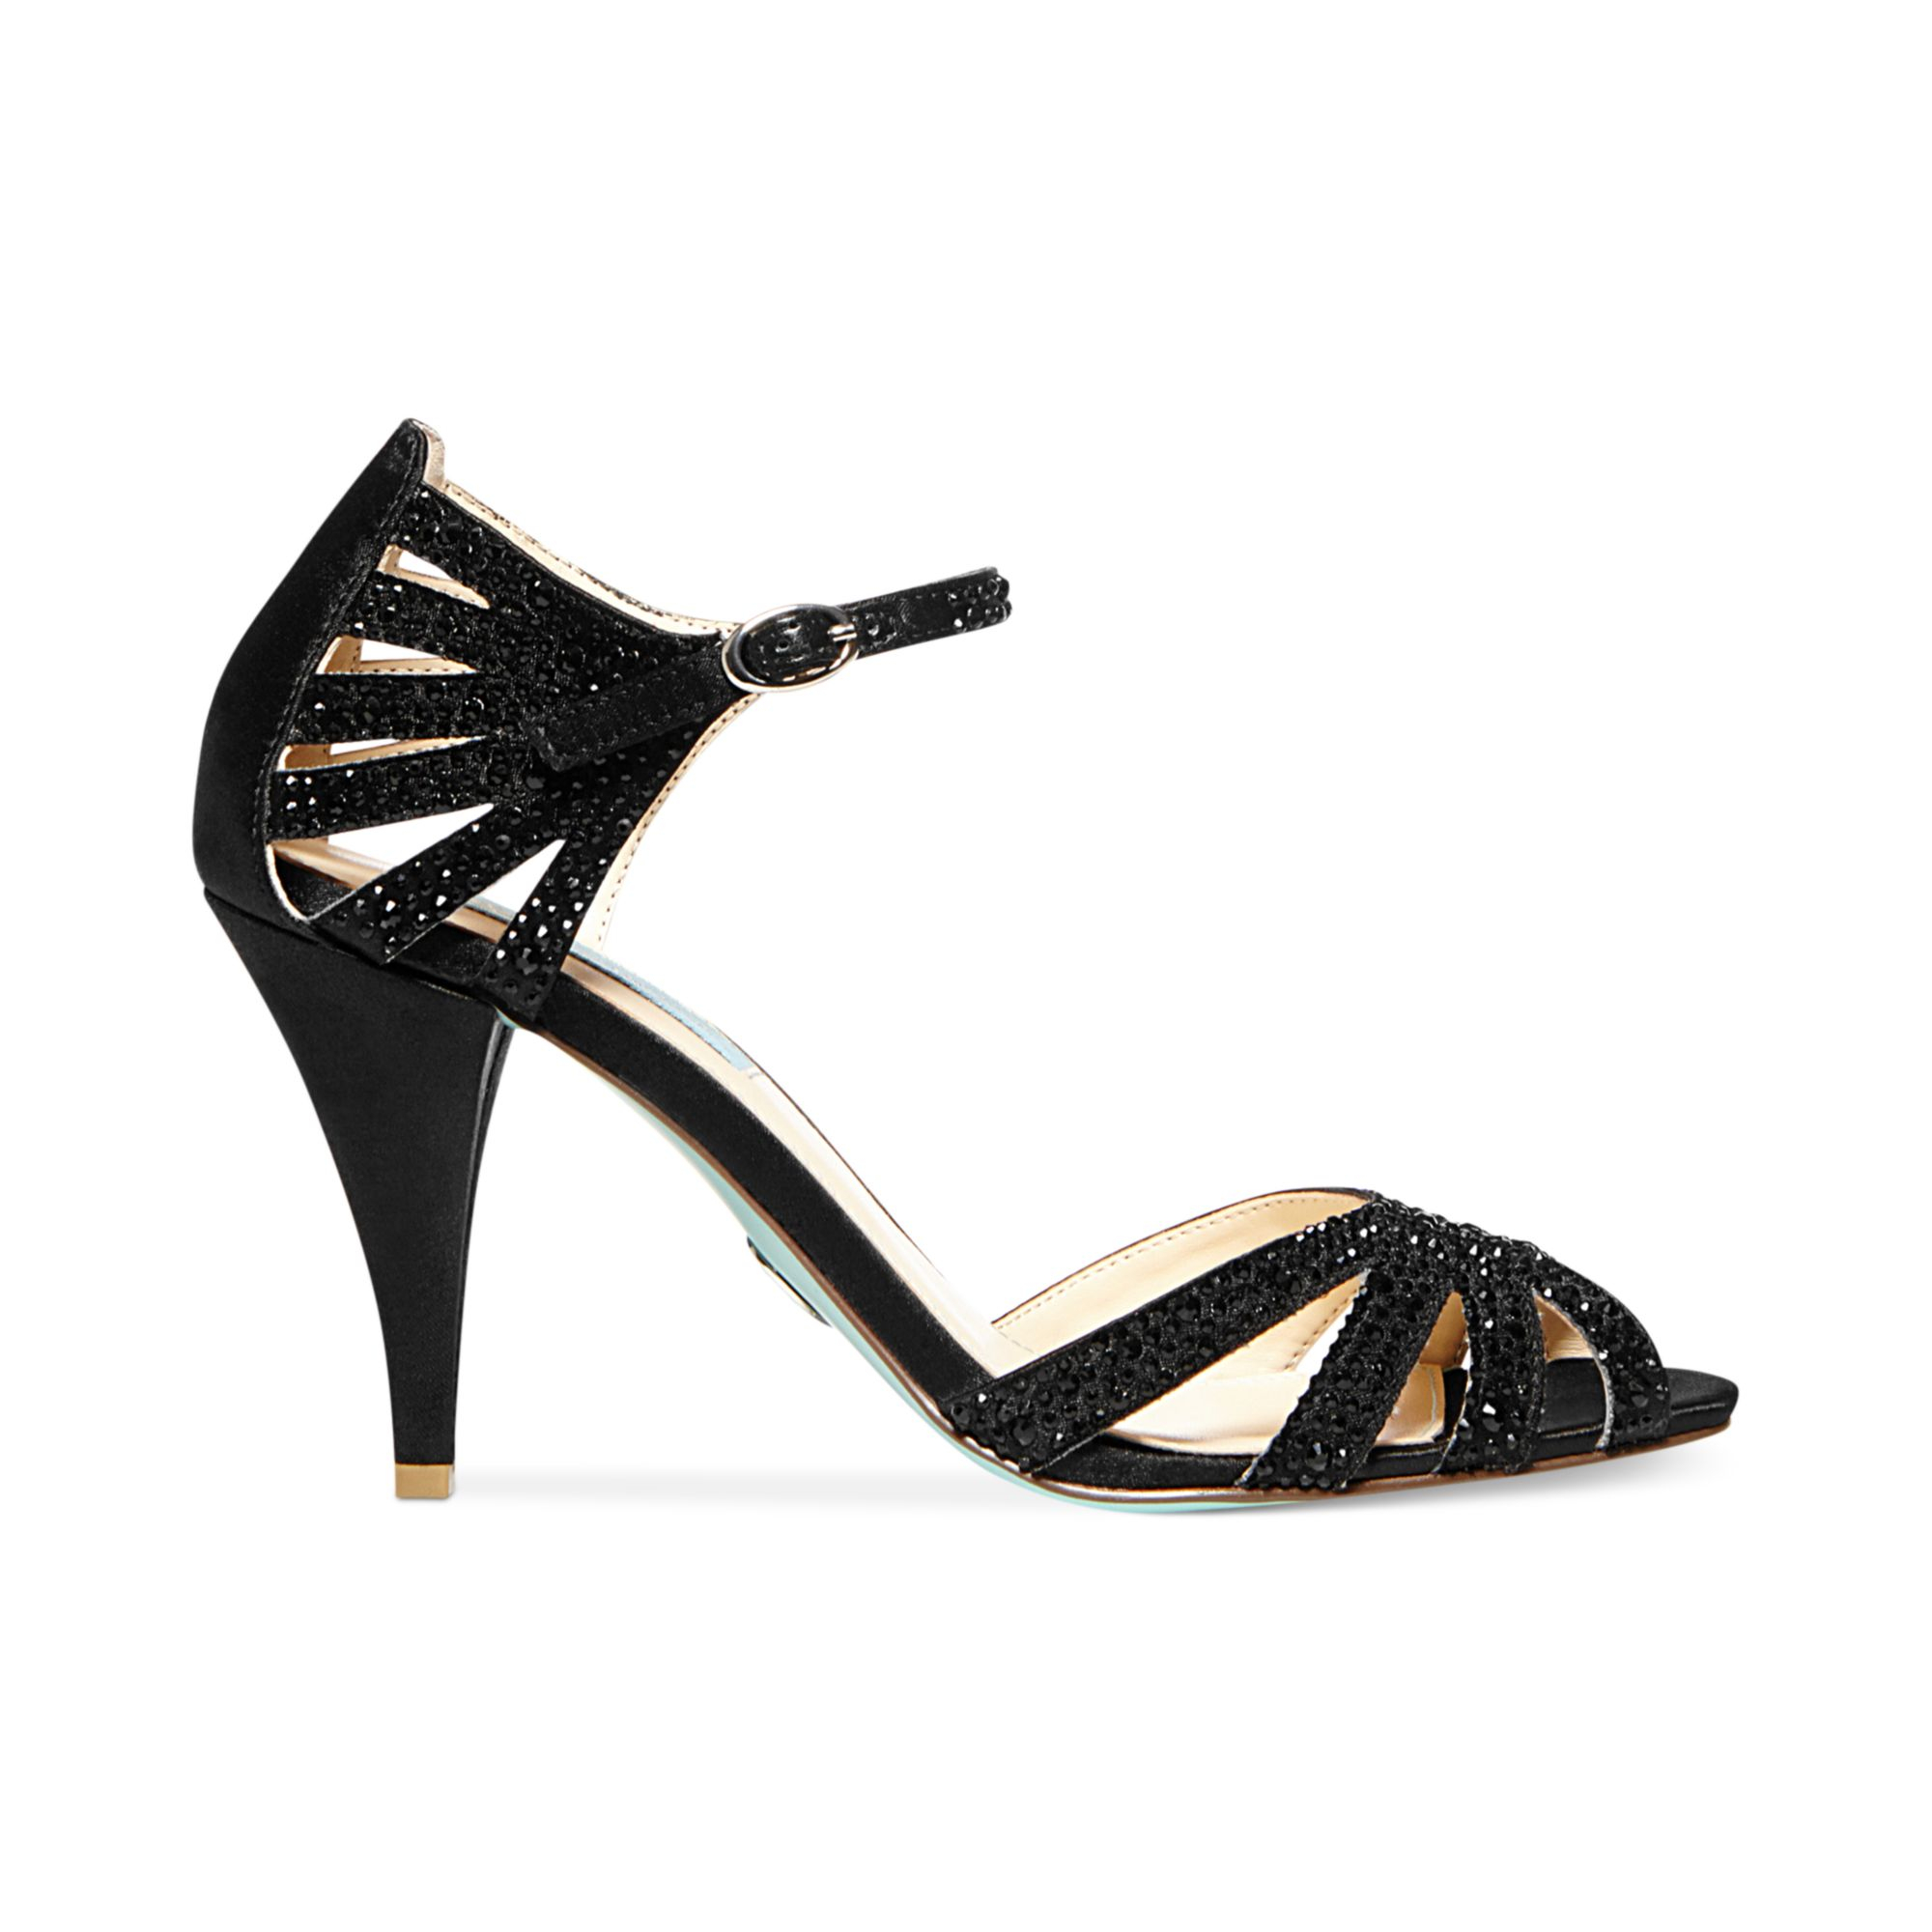 Black sandals evening - Betsey Johnson Blue By Sweet Evening Sandals In Black Lyst 2000x2000